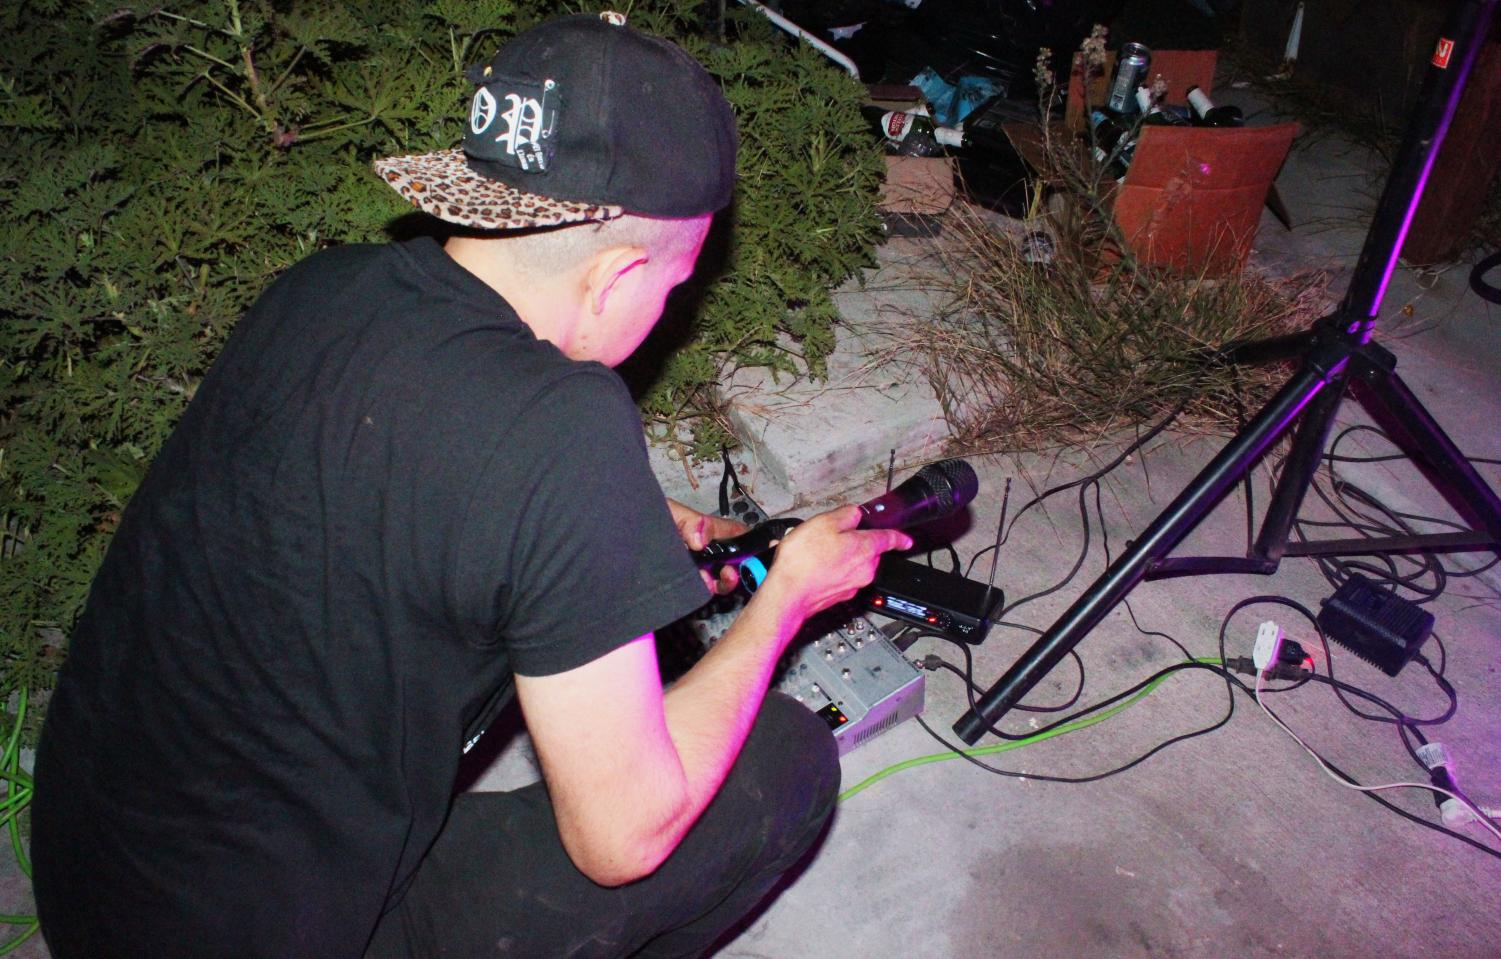 Sabino Sanchez, 29, sets up his microphones into his sound board before the first band performs